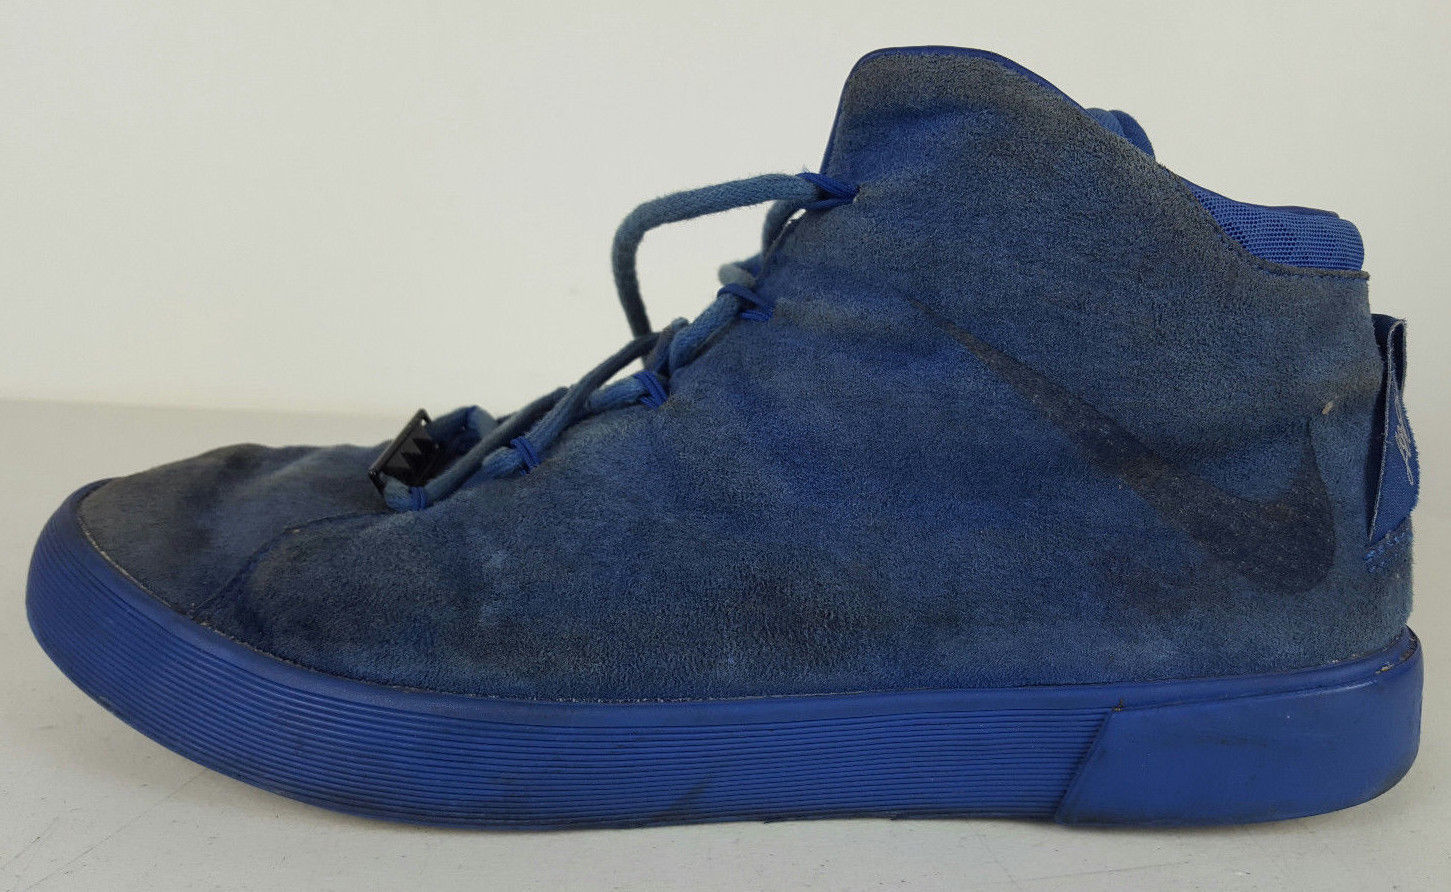 Beaters Nike LeBron 12 Lifestyle Blue Suede and 50 similar items. S l1600 895de3bff6